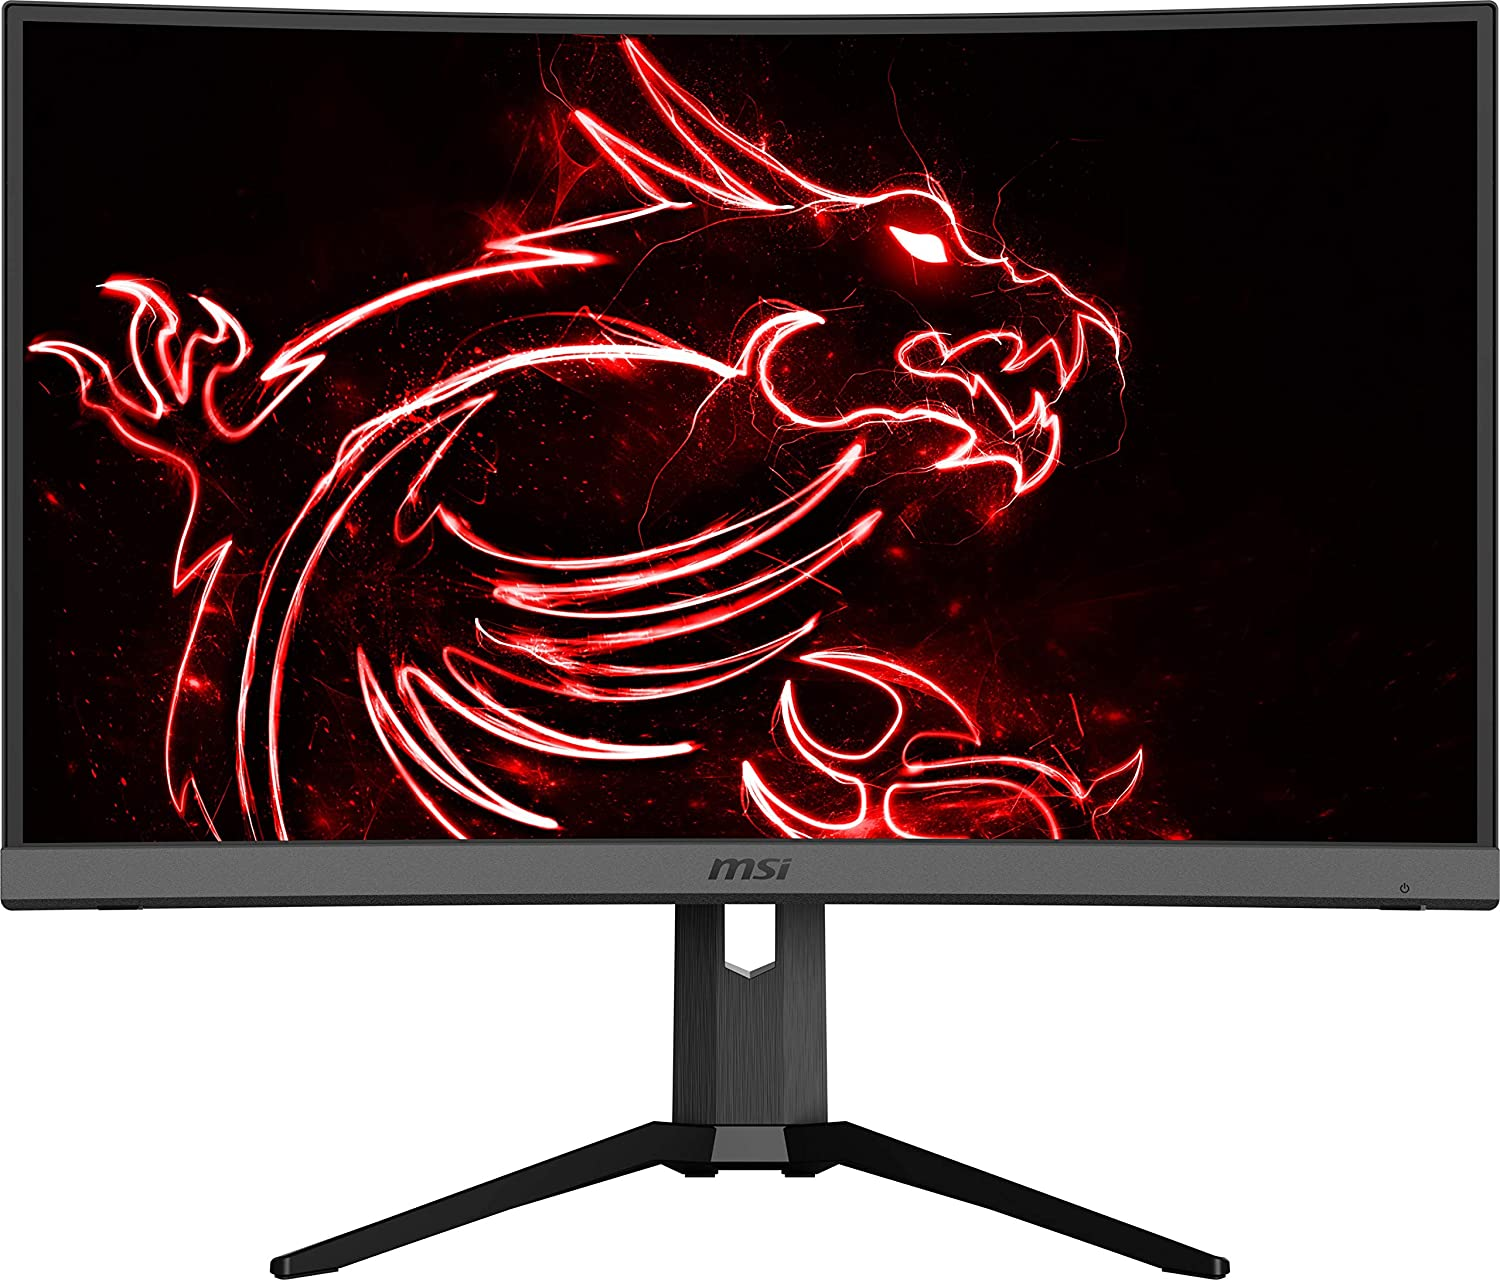 Best 240hz Monitors